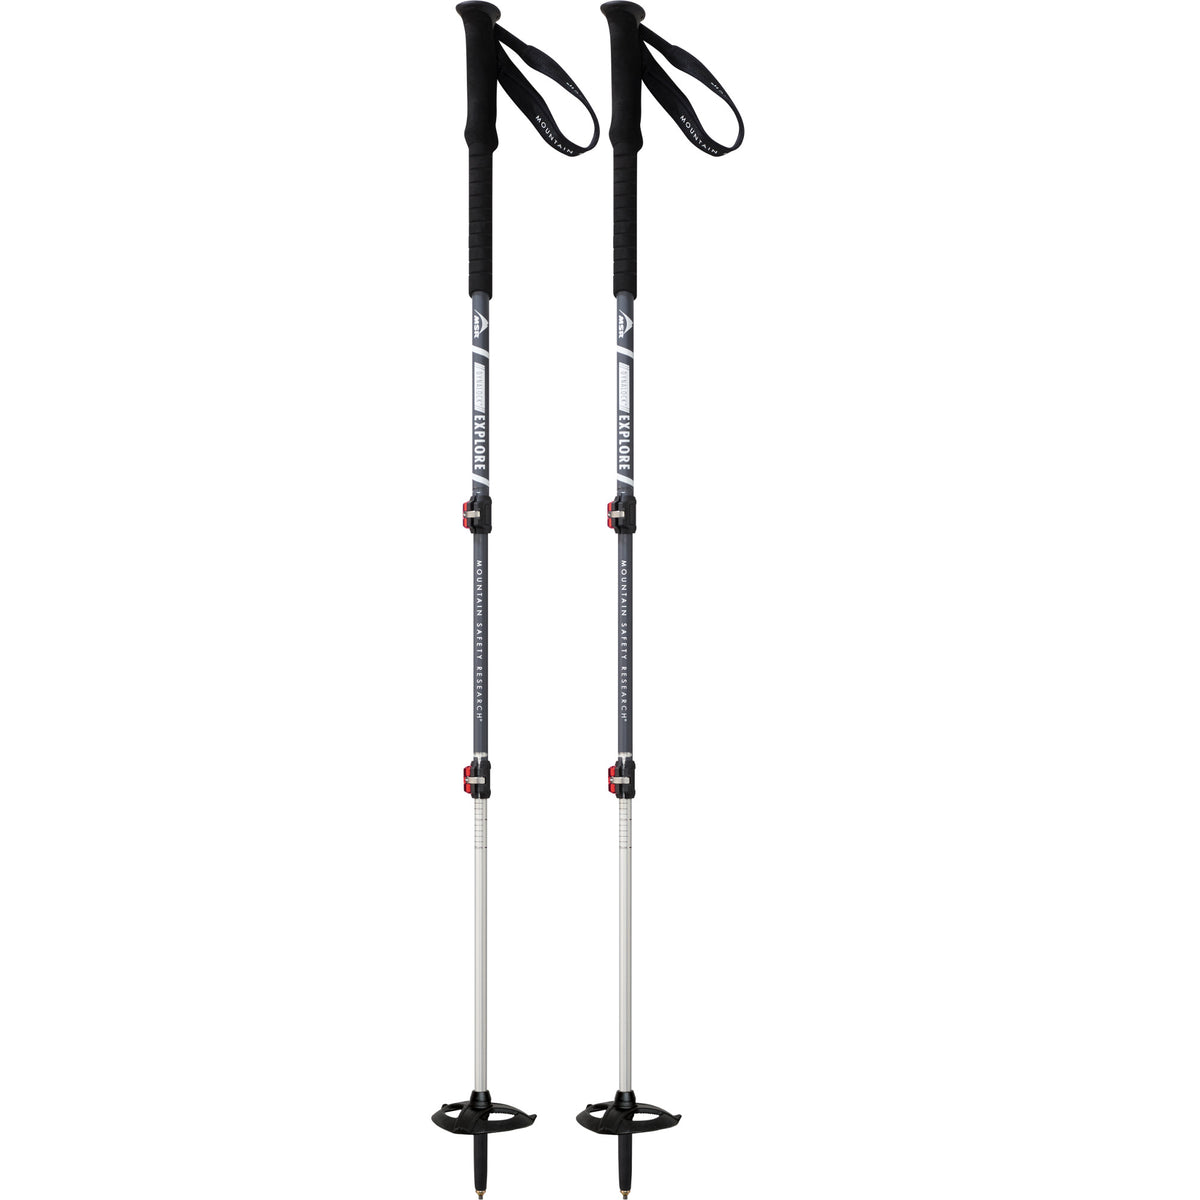 Pair of MSR Dynalock Explore trekking poles in Grey colour